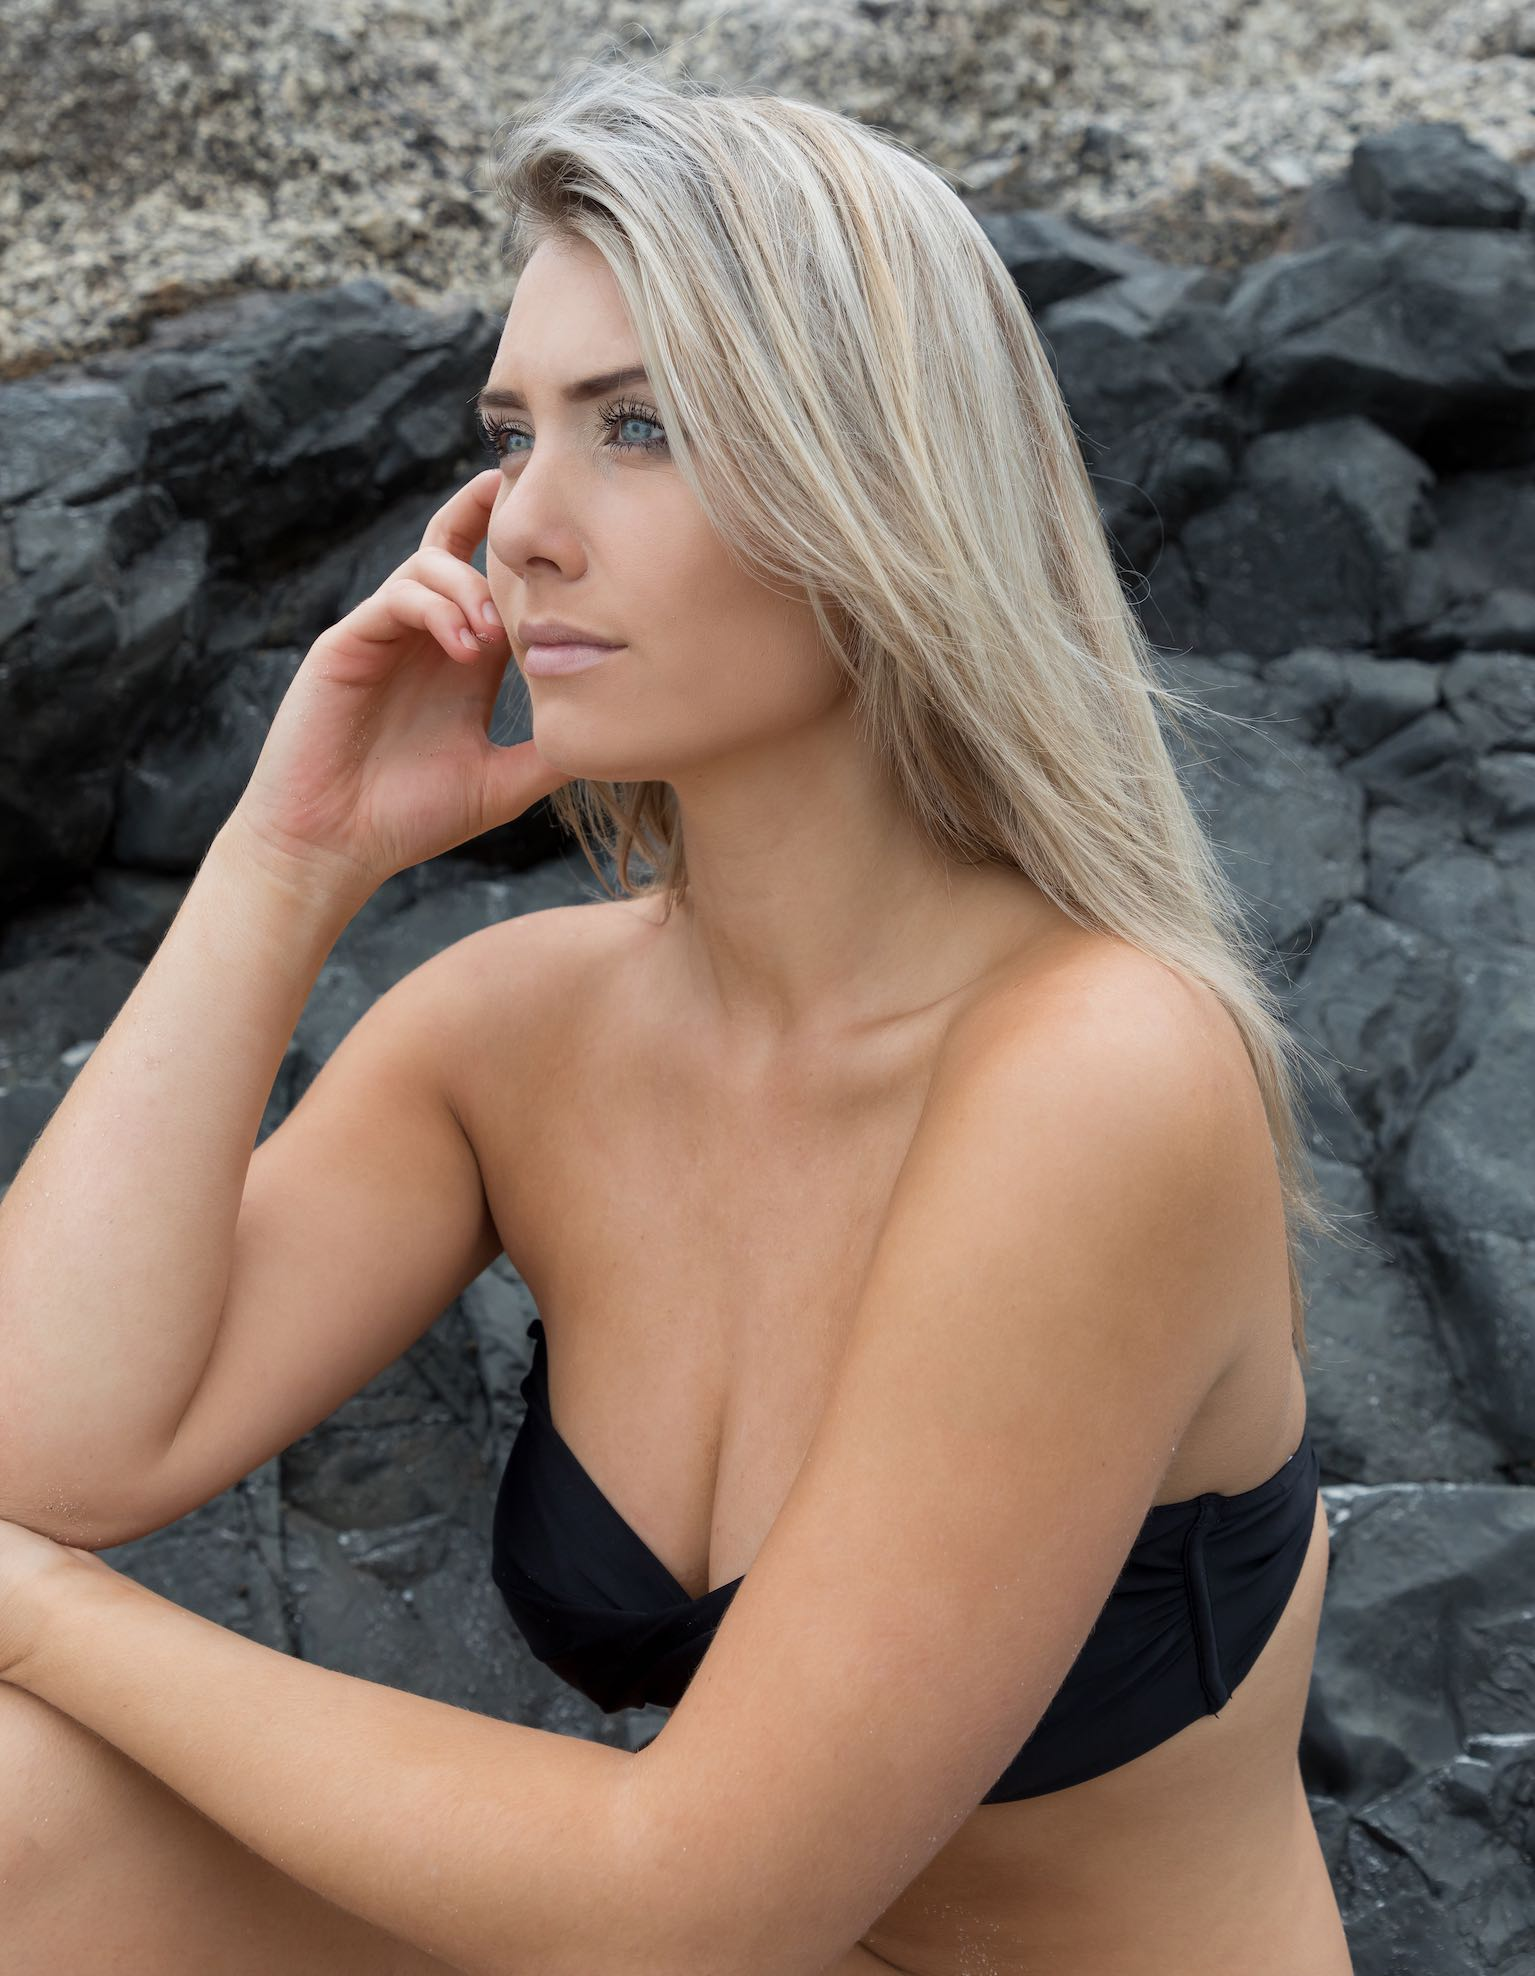 Our SA Babes feature with Delanie Kruger